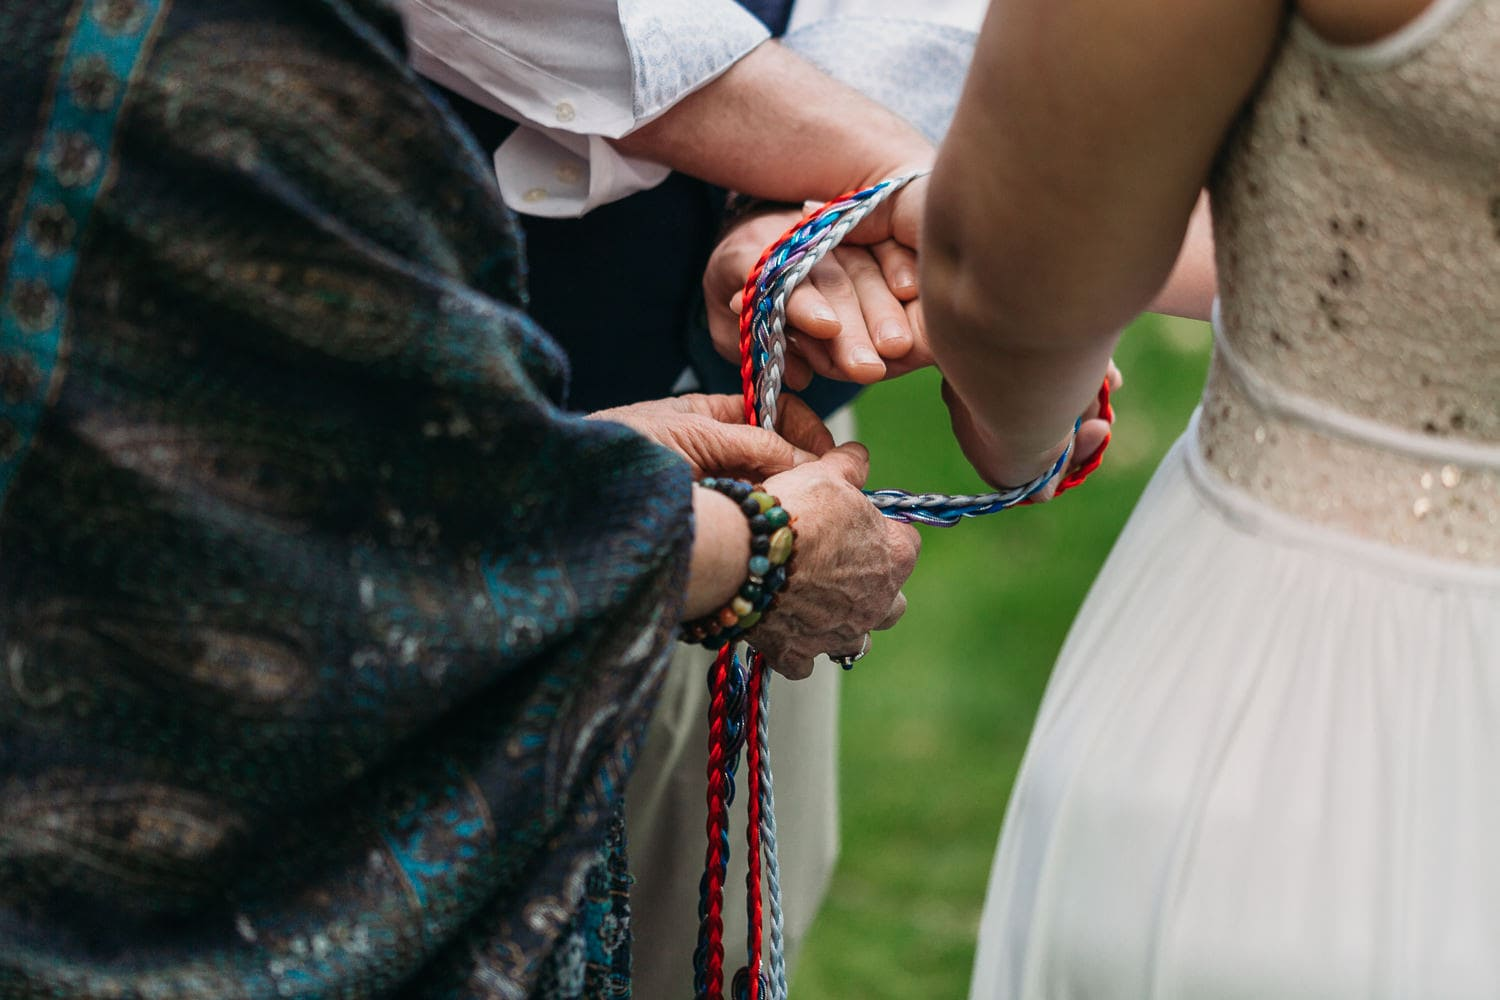 vancouver hand-fasting wedding ceremony